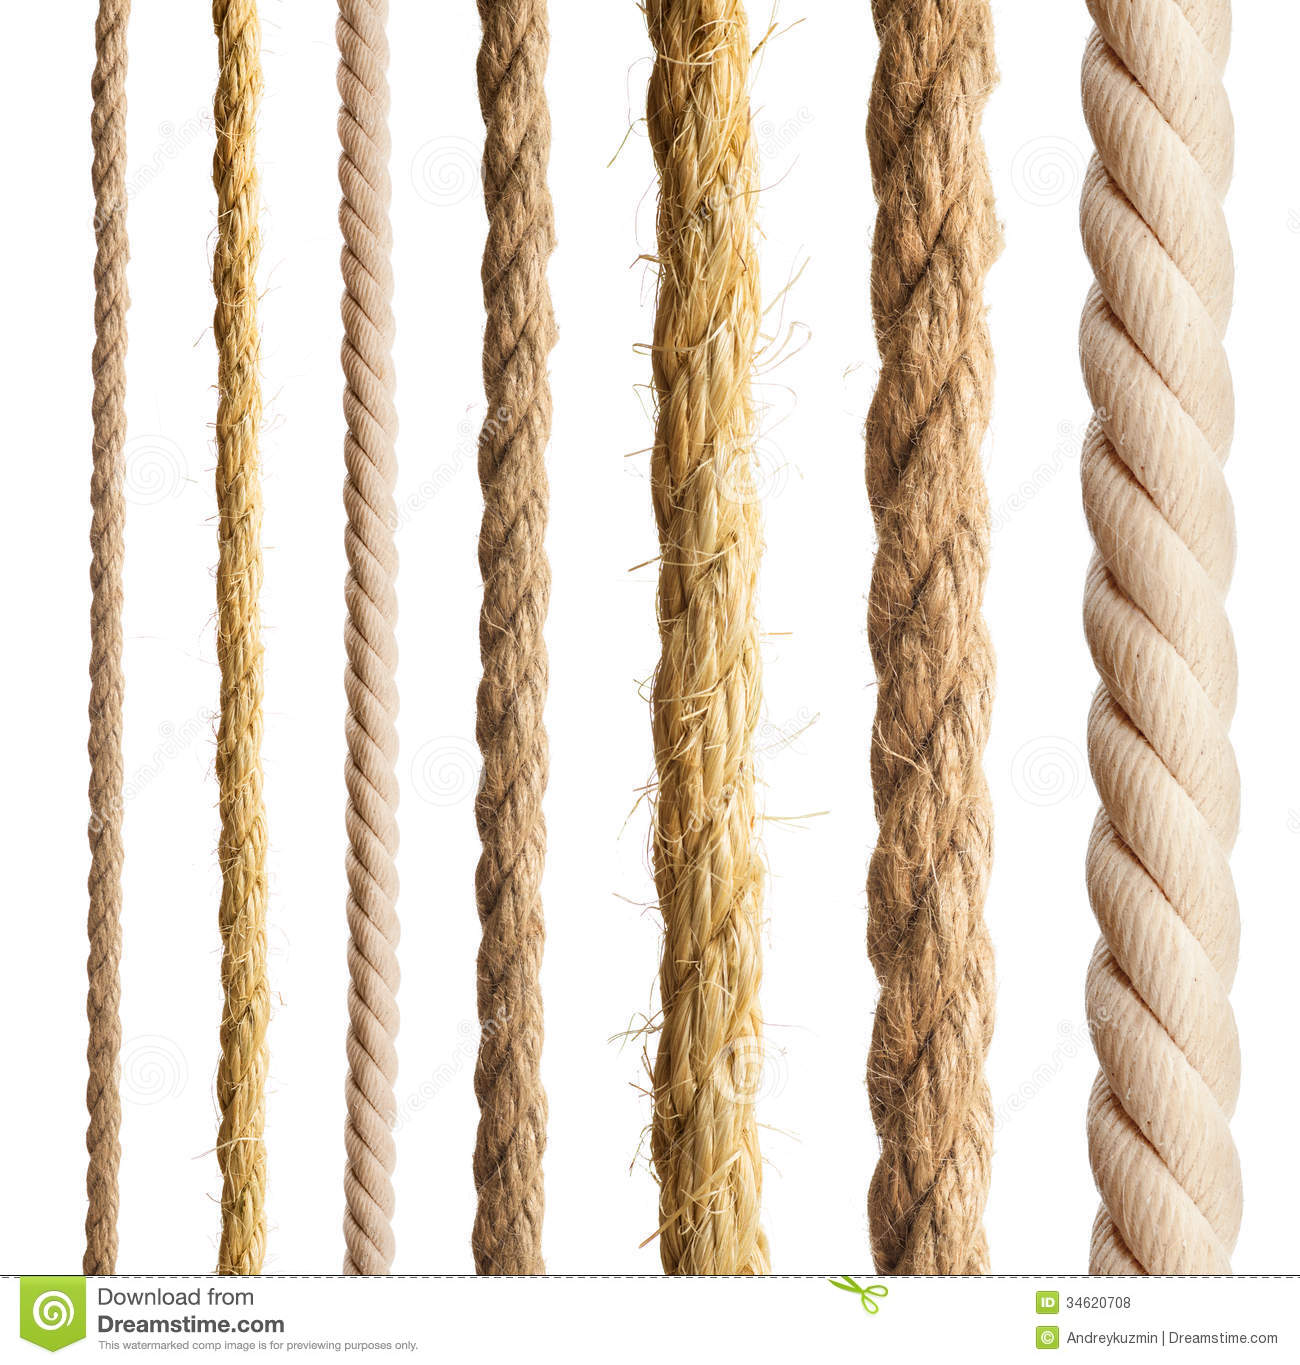 Rope isolated. Collection of different ropes on white background.